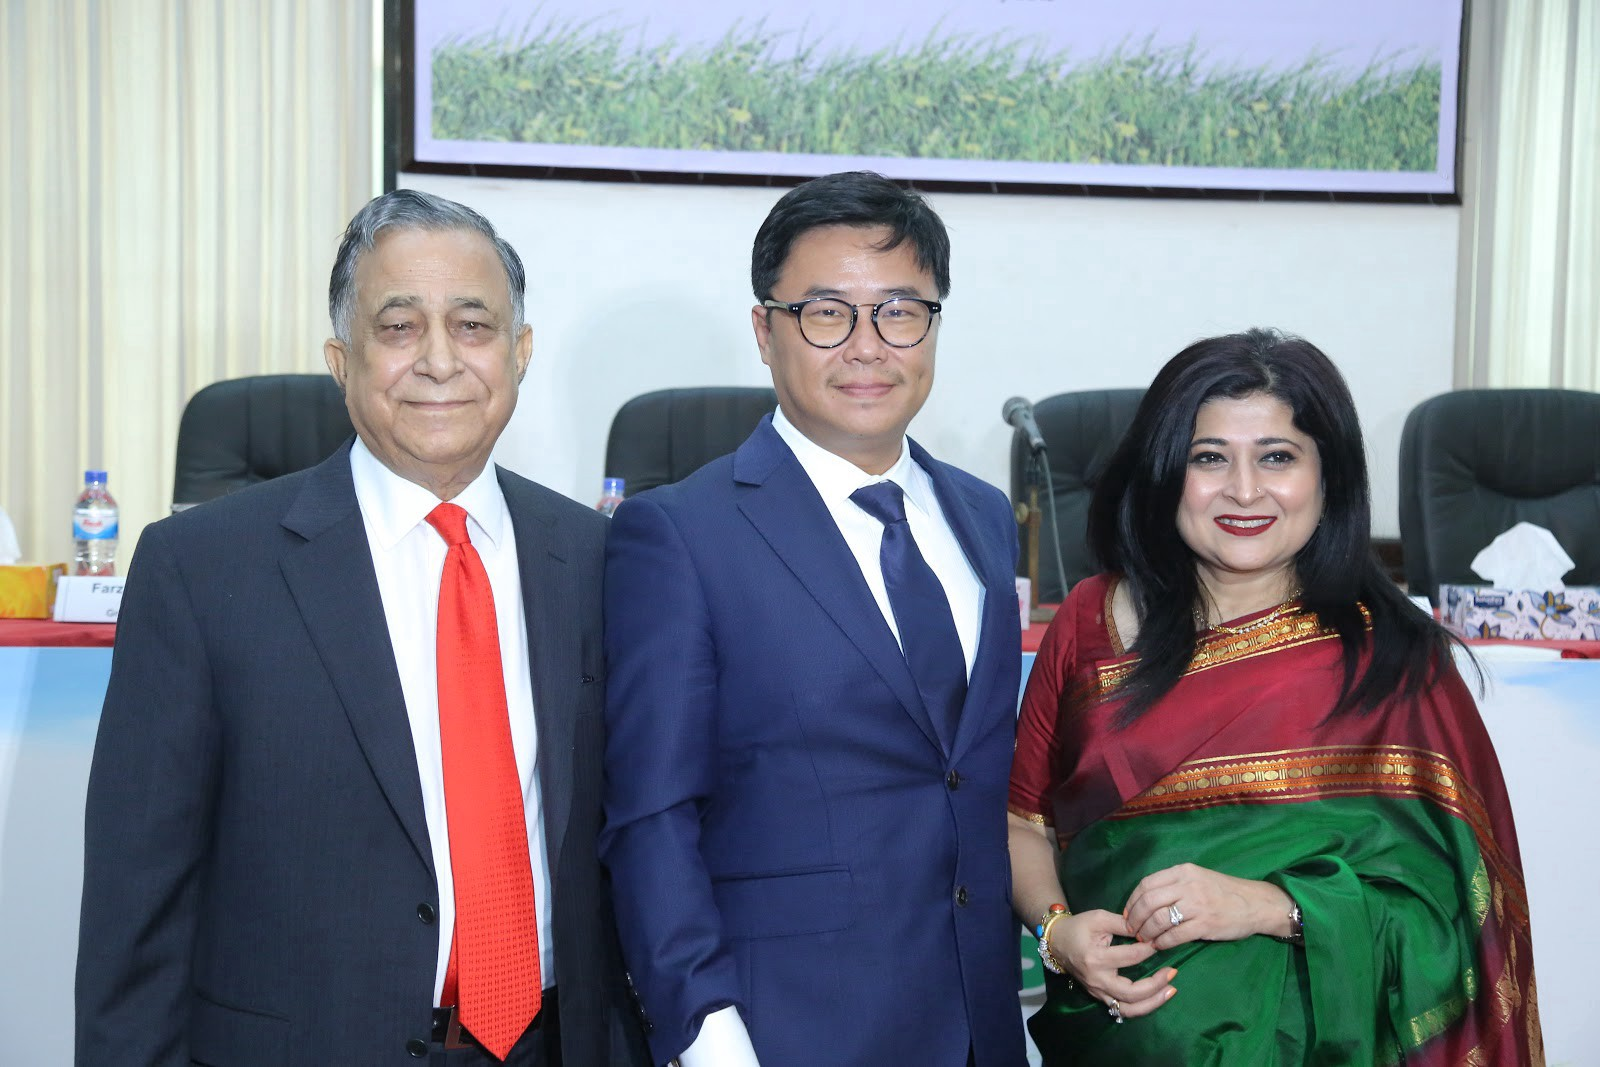 GDIC founder & advisor, Mr. Nasir A. Chowdhury and daughter, CEO & MD of GDIC, Farzana Chowdhury with Roy Lai, Founder & CEO